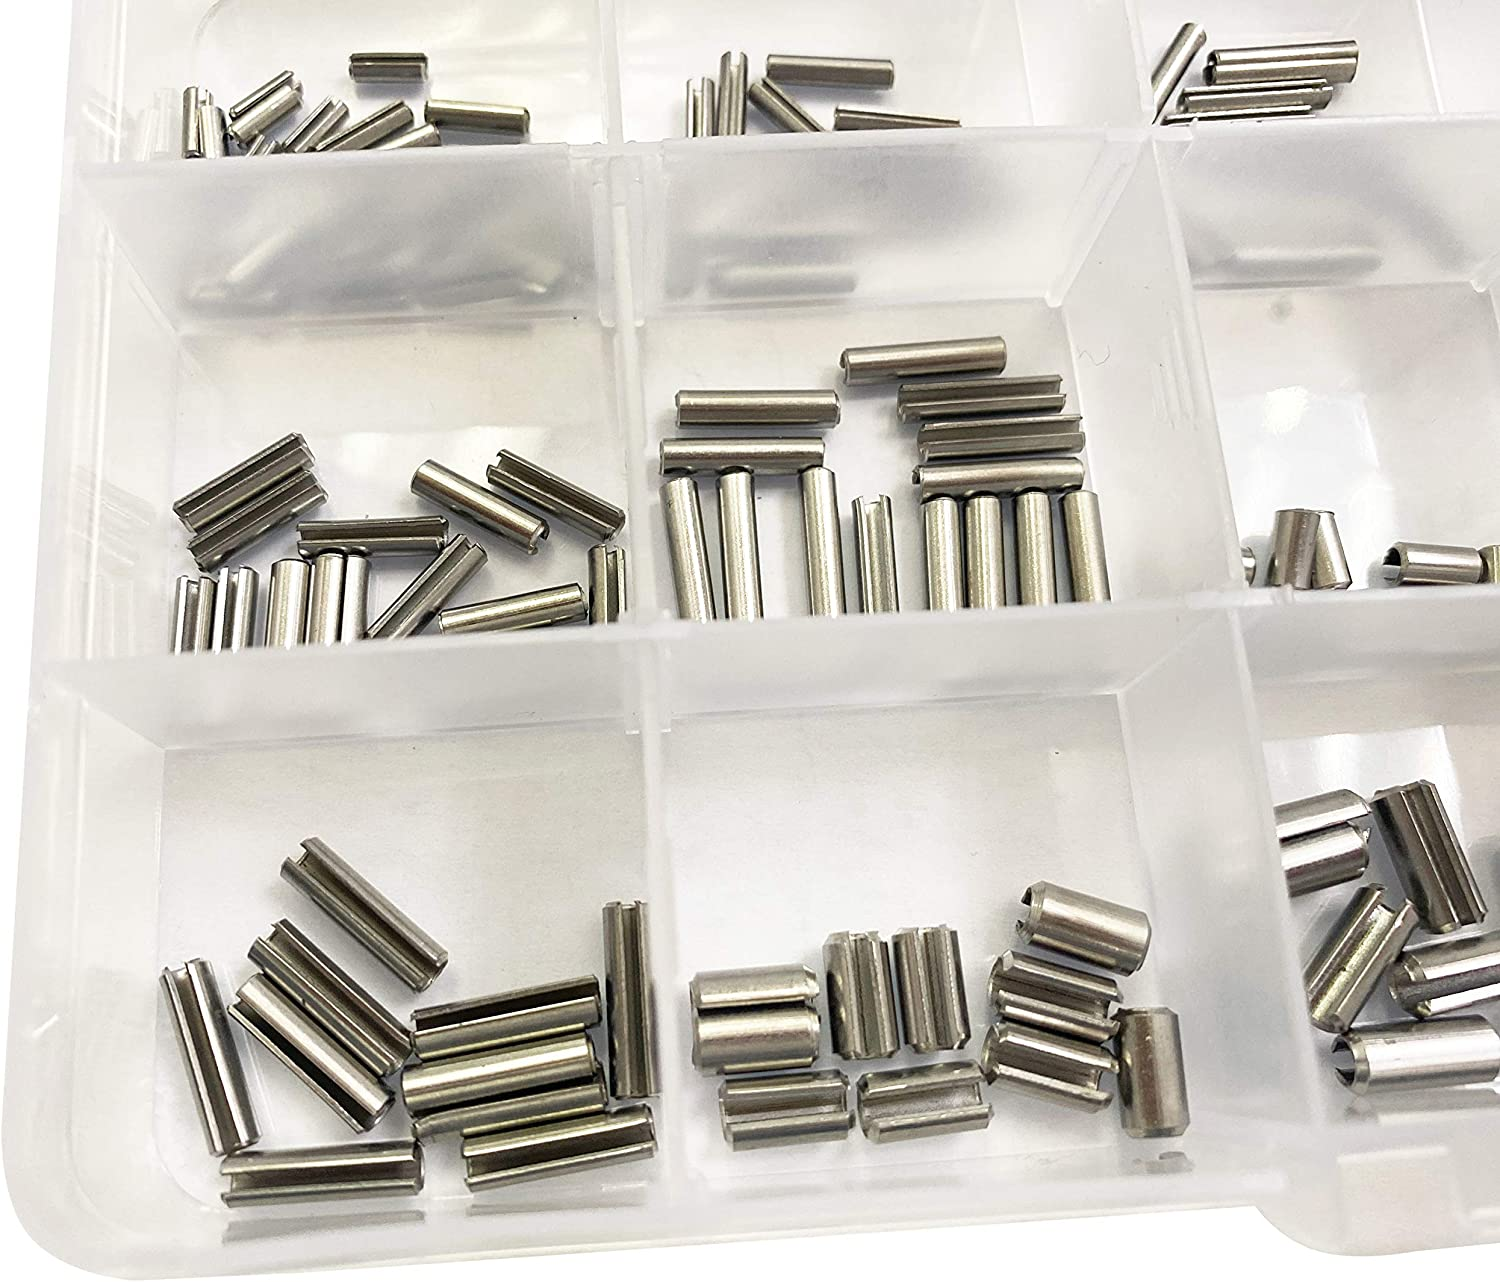 R HFS 200Pcs M2 M2.5 M3 M4 Slotted Spring Pin Assortment Kit 304 Stainless Steel